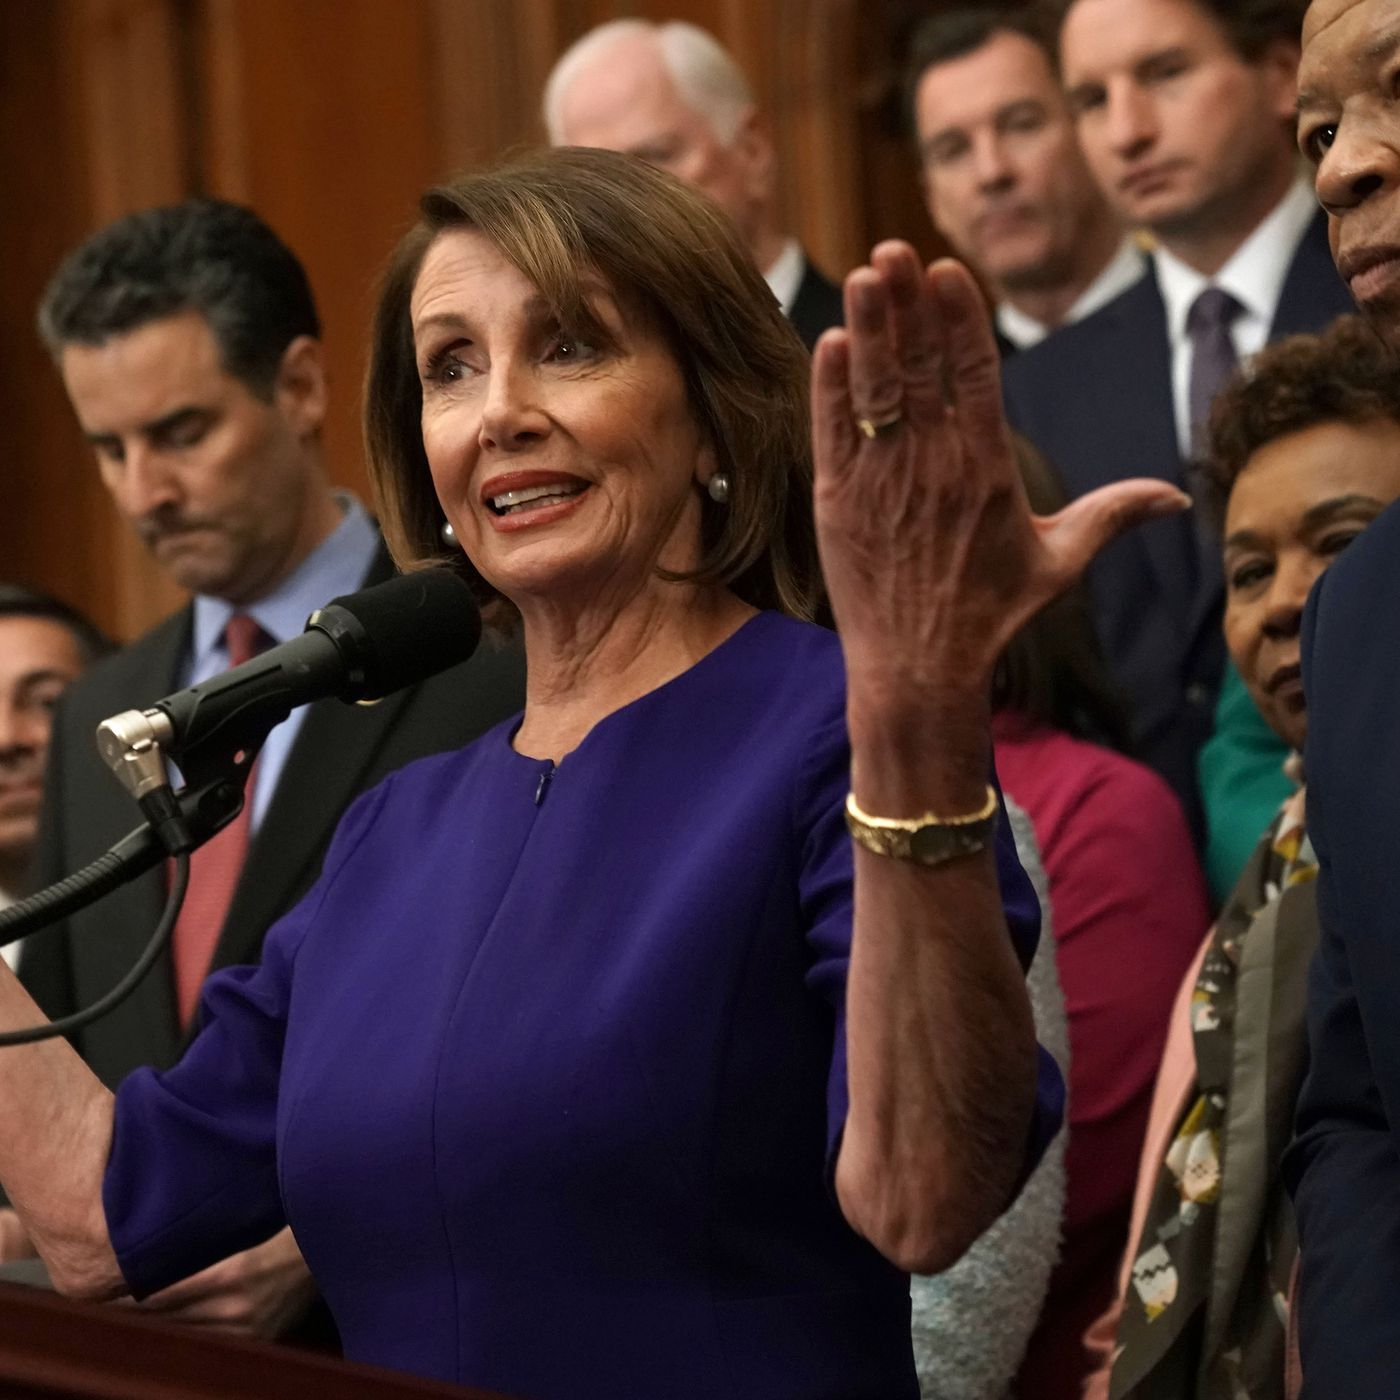 vox.com - Emily Stewart - Nancy Pelosi uninvites Trump from the State of the Union until the shutdown is over